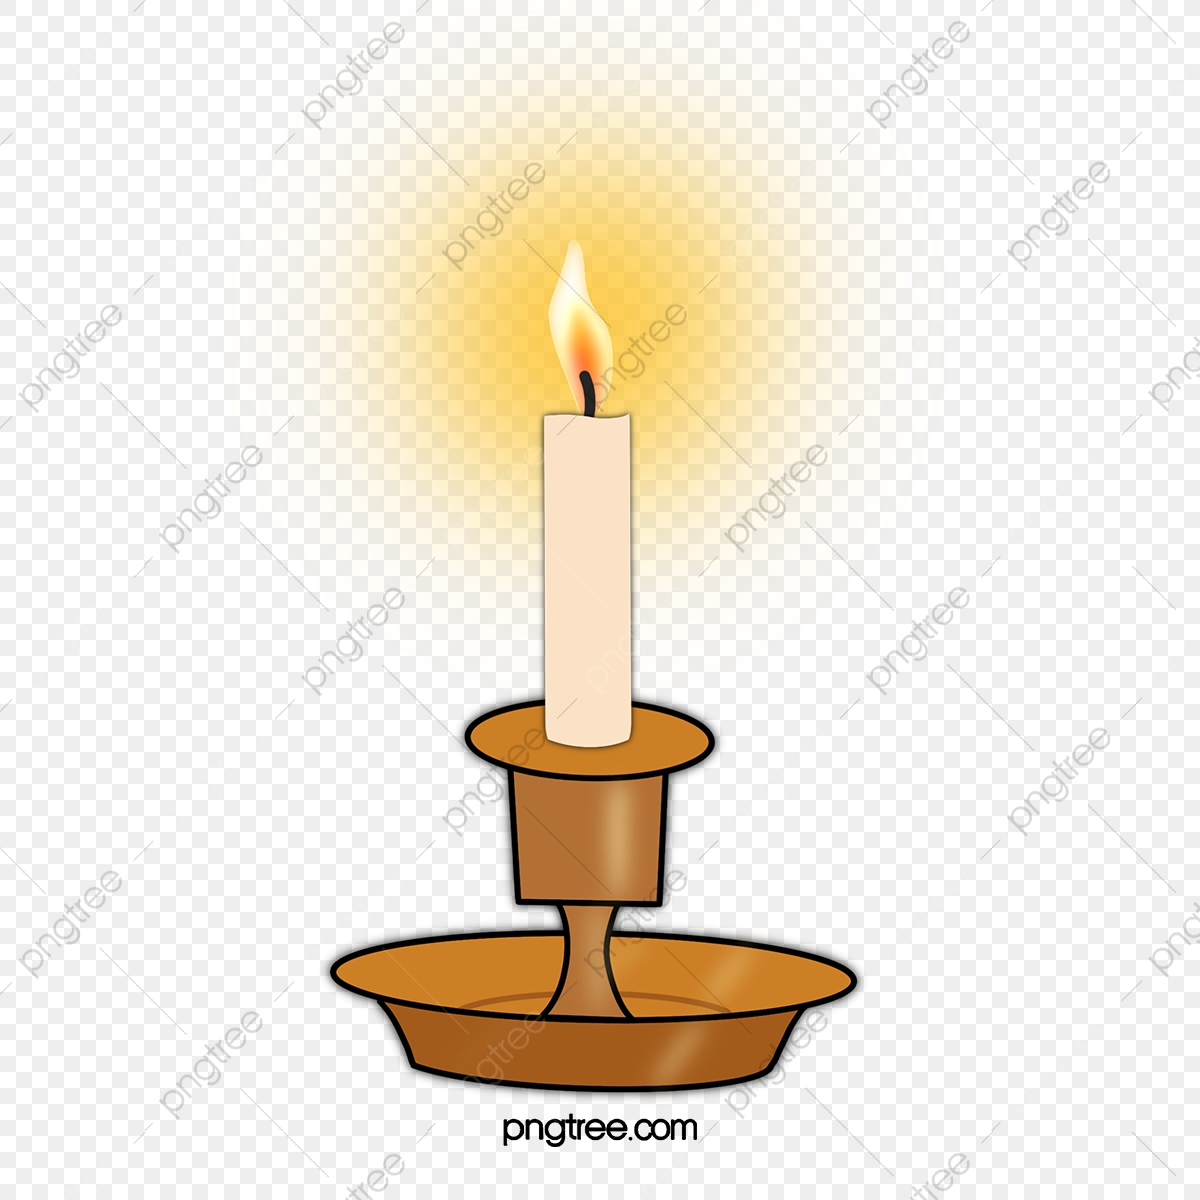 Burning Candles, Combustion, Candle, White PNG Transparent Clipart.